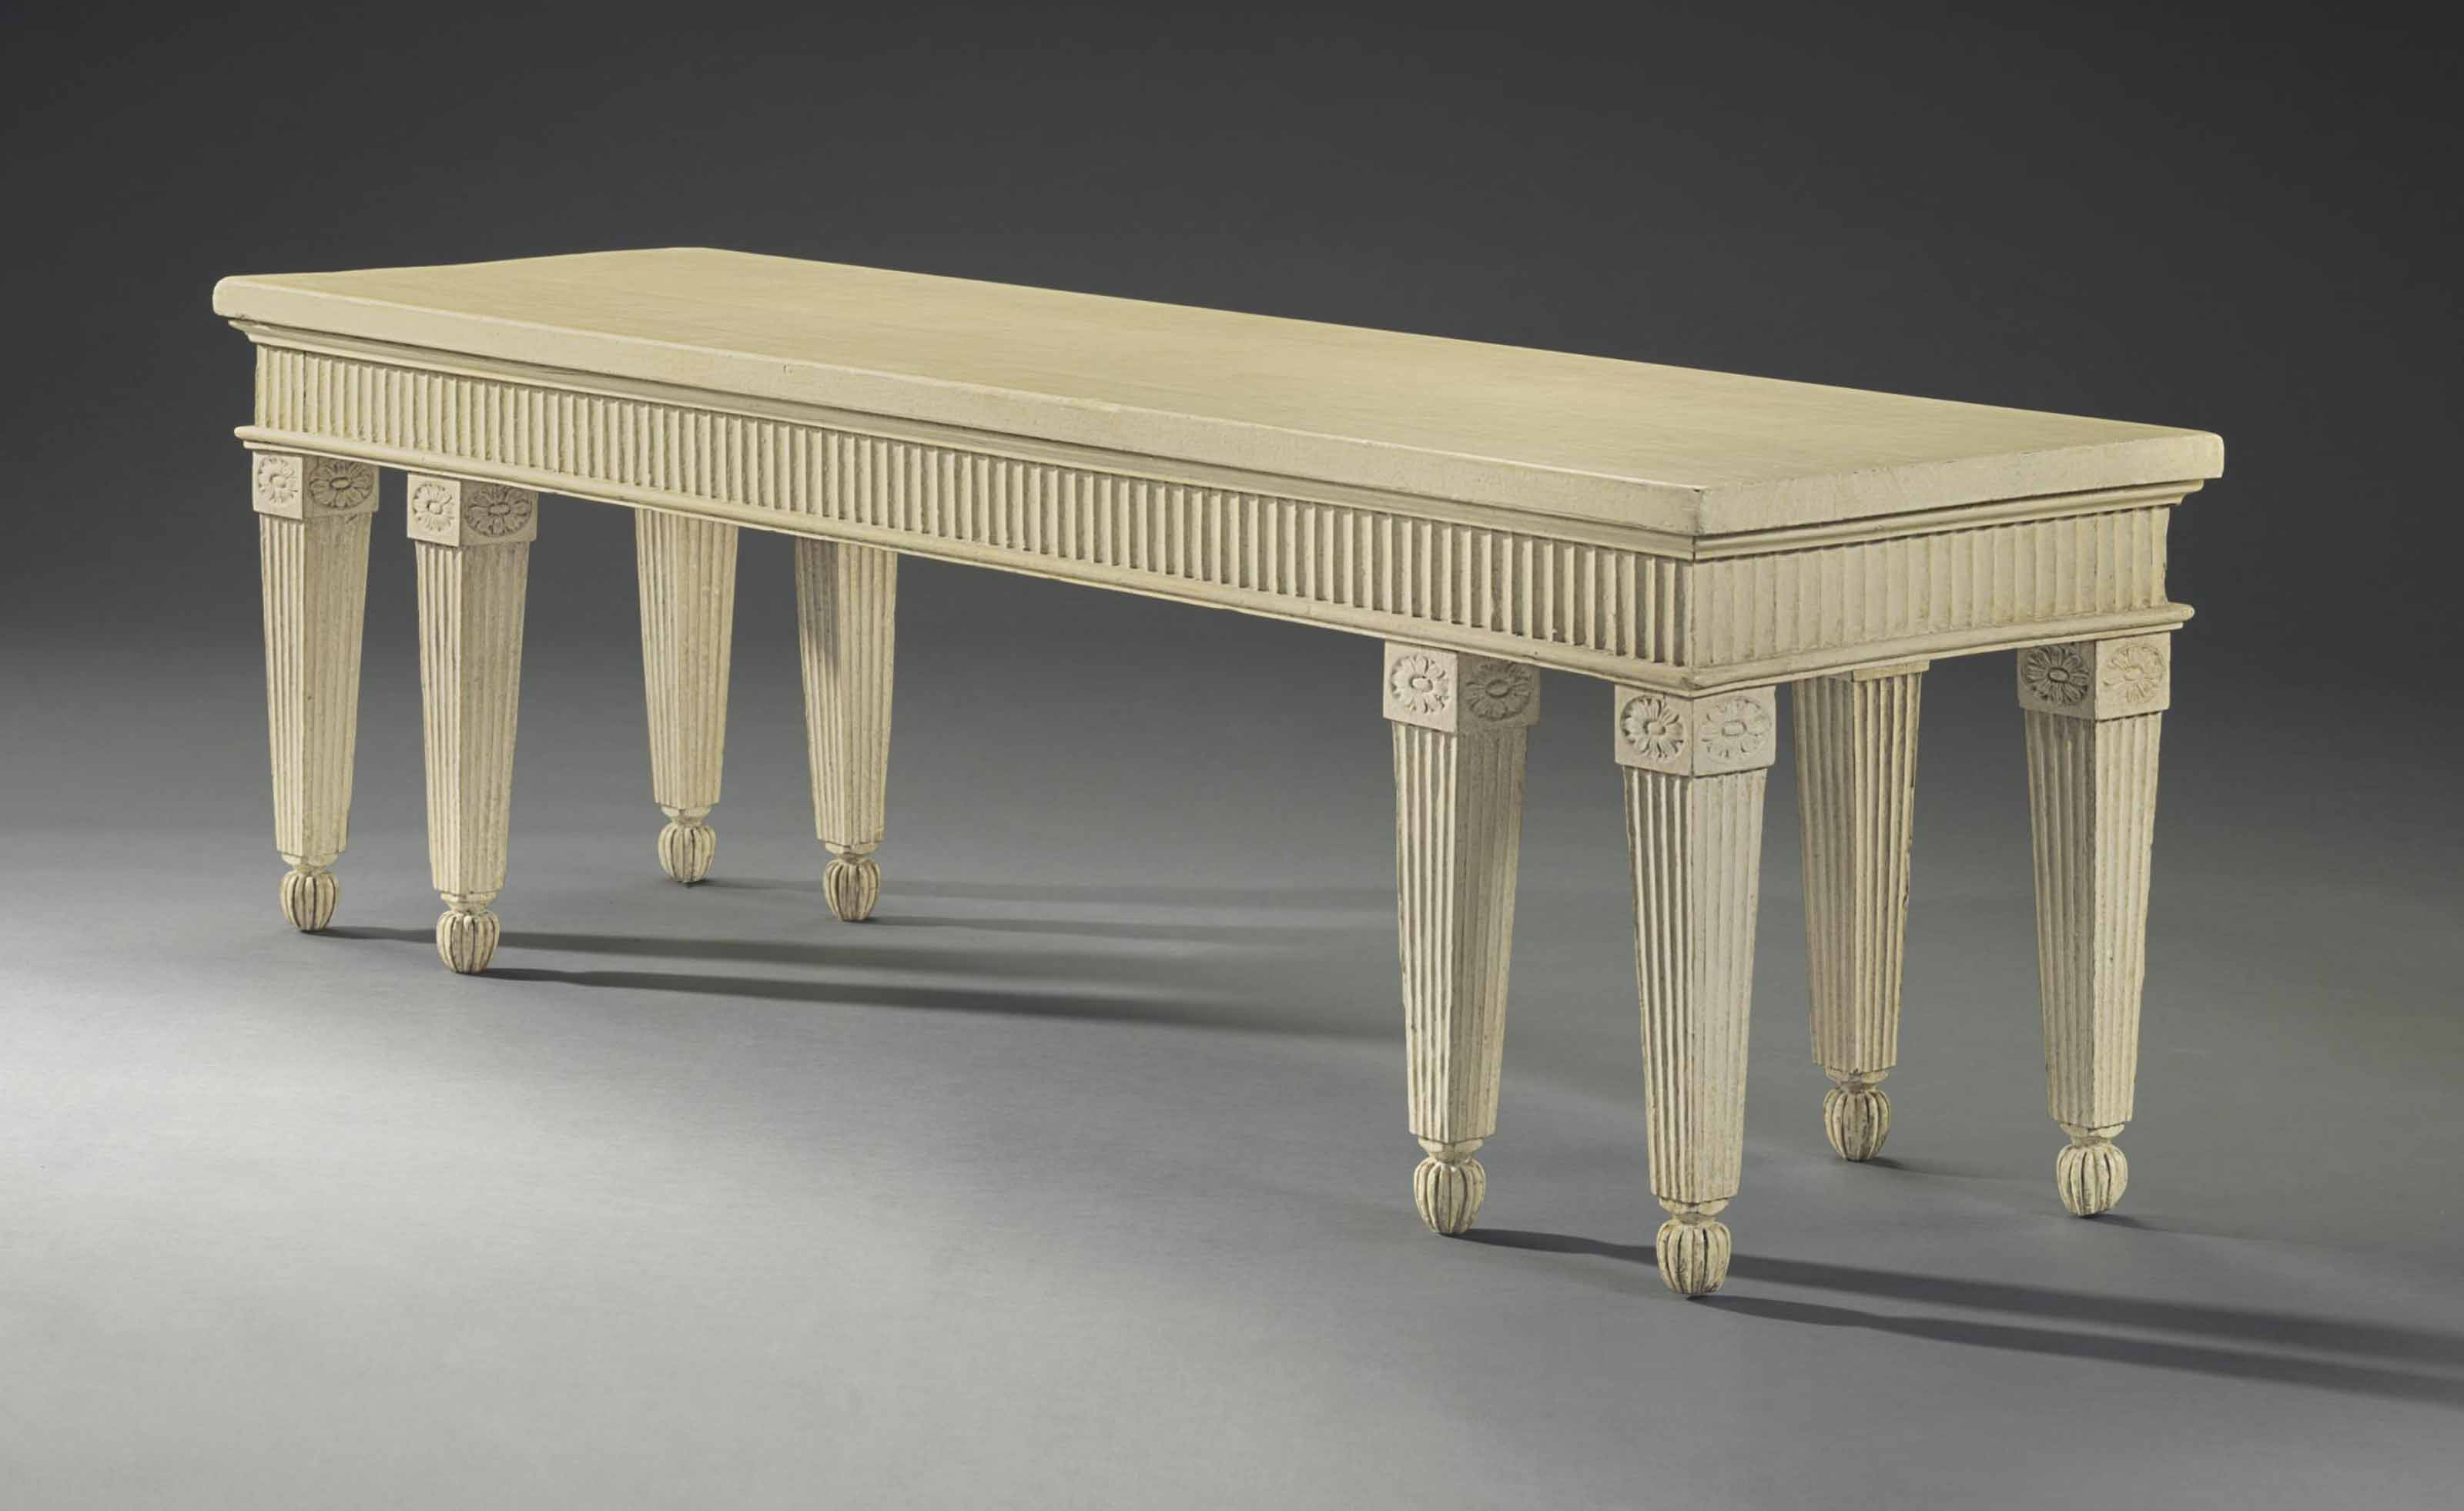 A GEORGE III CREAM-PAINTED HALL BENCH